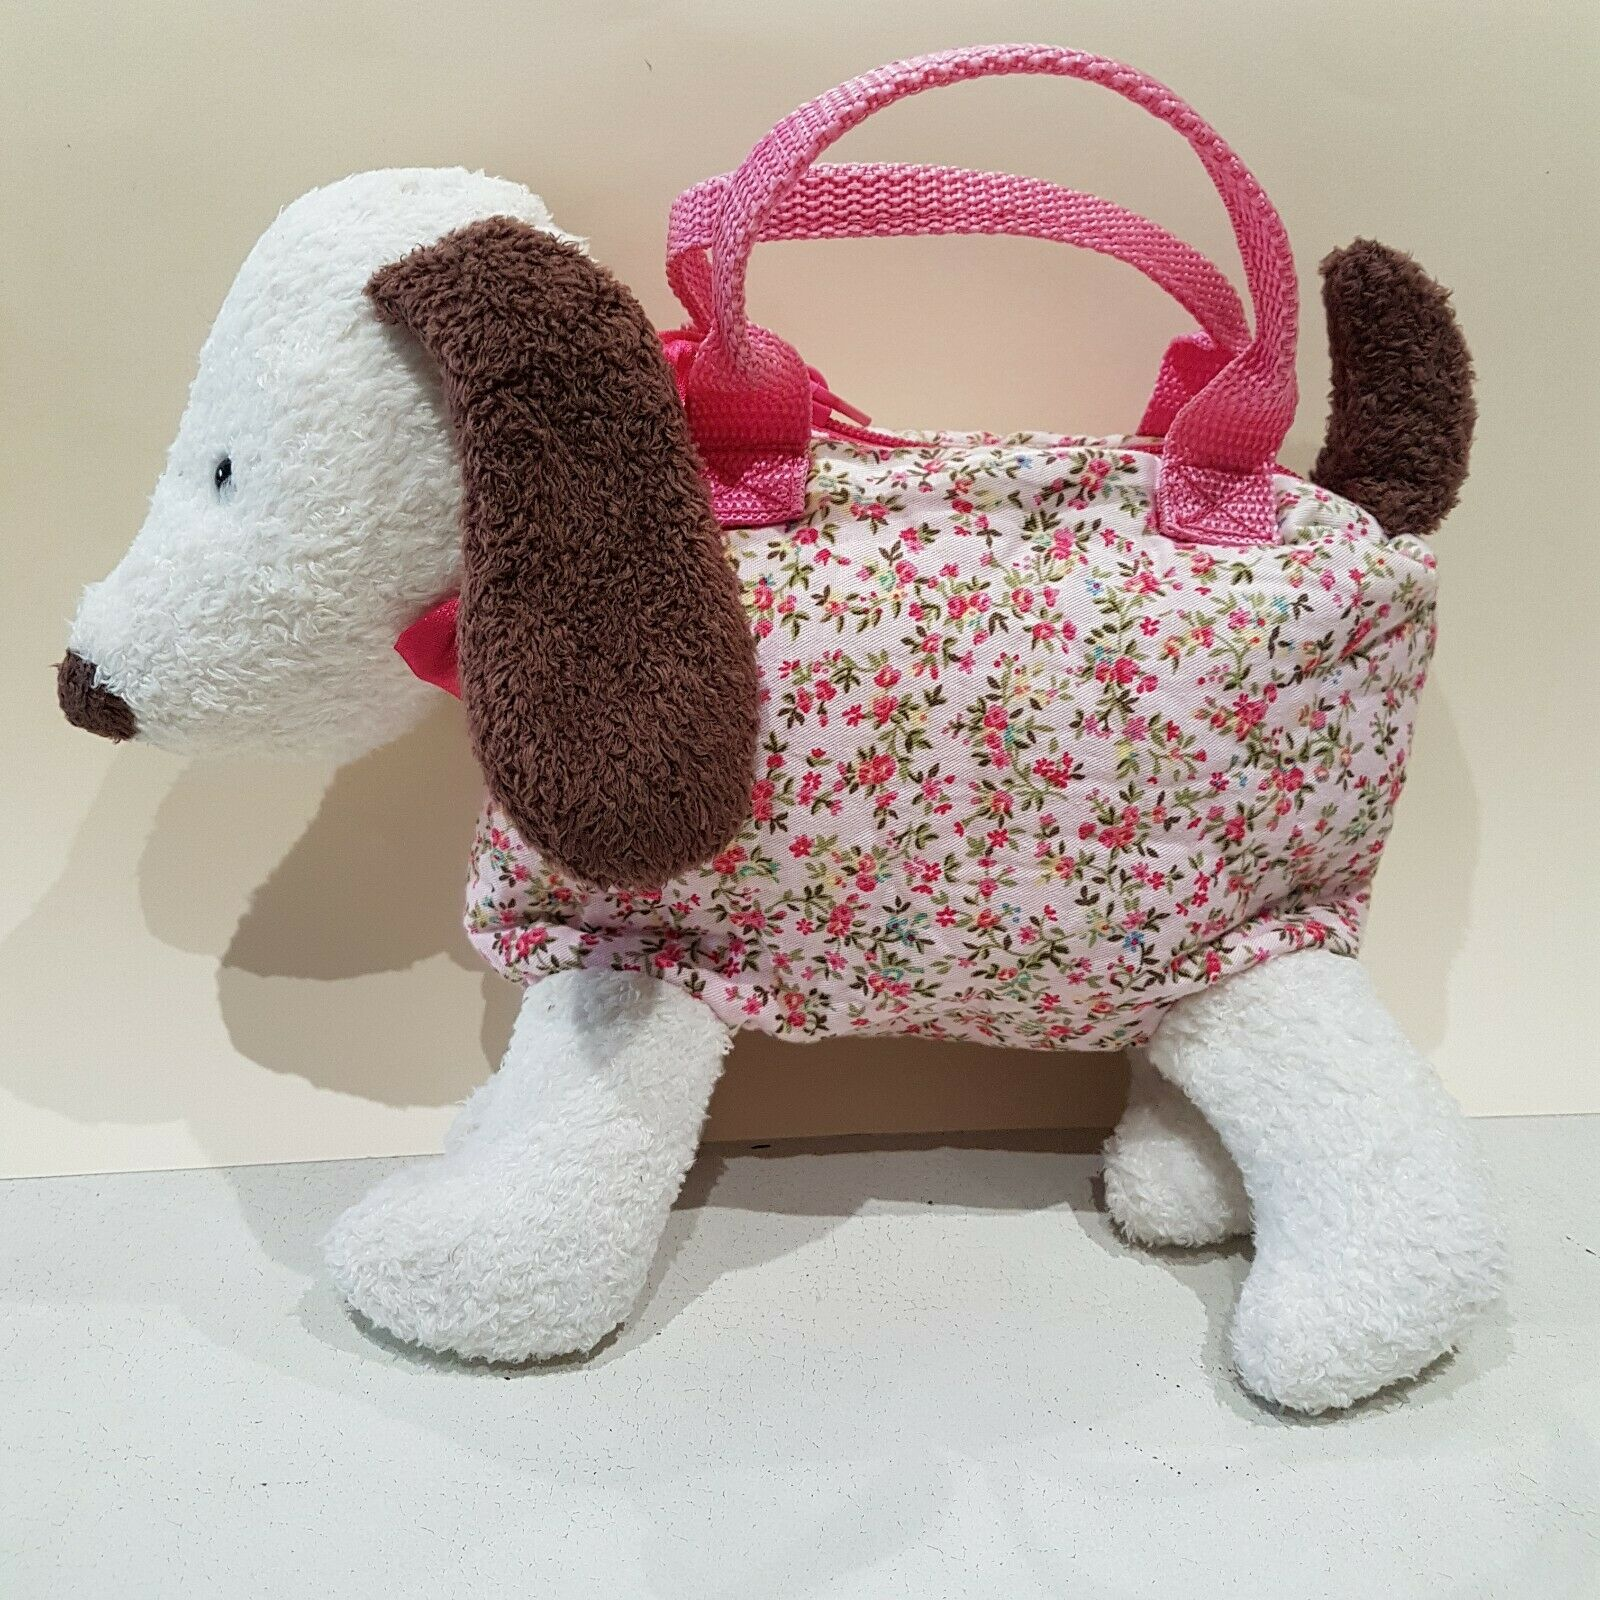 Jellycat Dainty Puppy Dog NEW Bag Retired Collectable RARE Soft Toy Plush